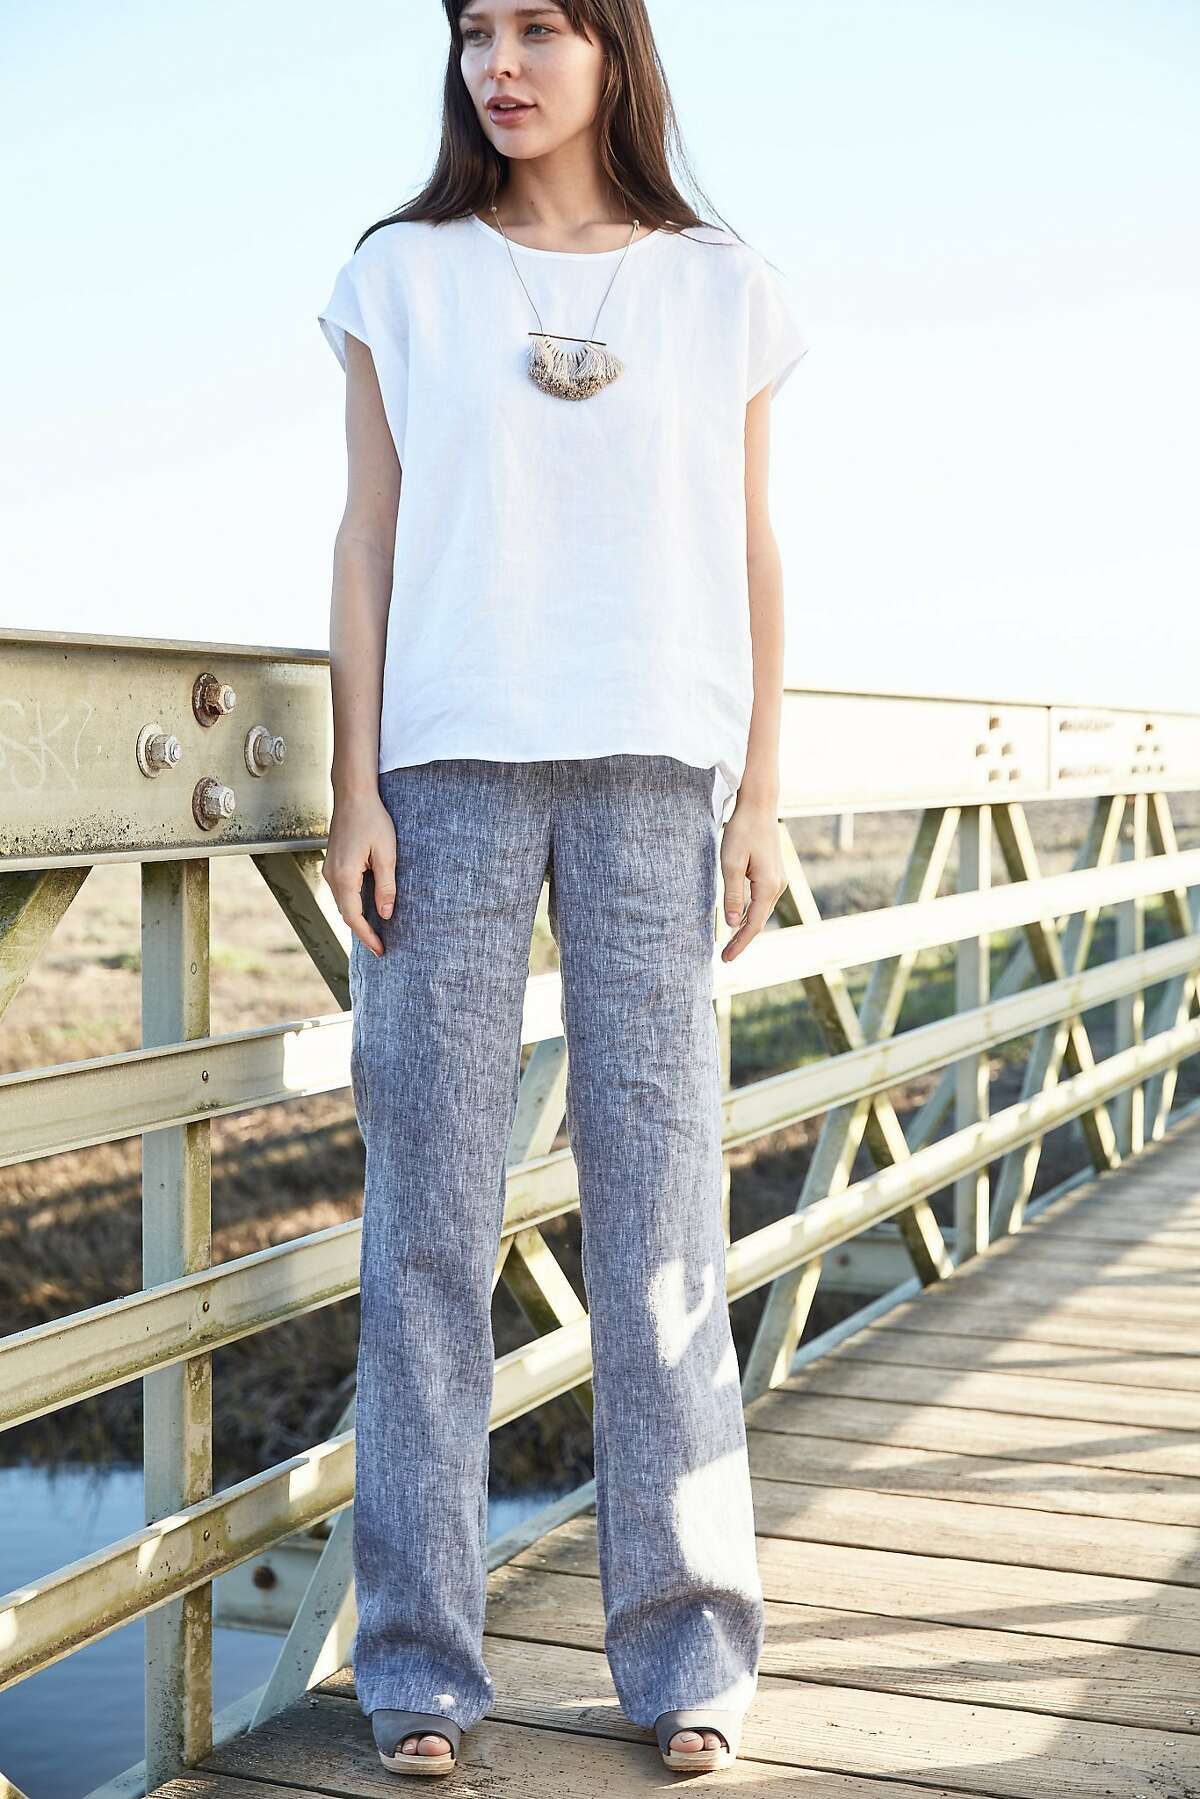 This simple shell top ($95) may be your new closet favorite for myriad reasons.